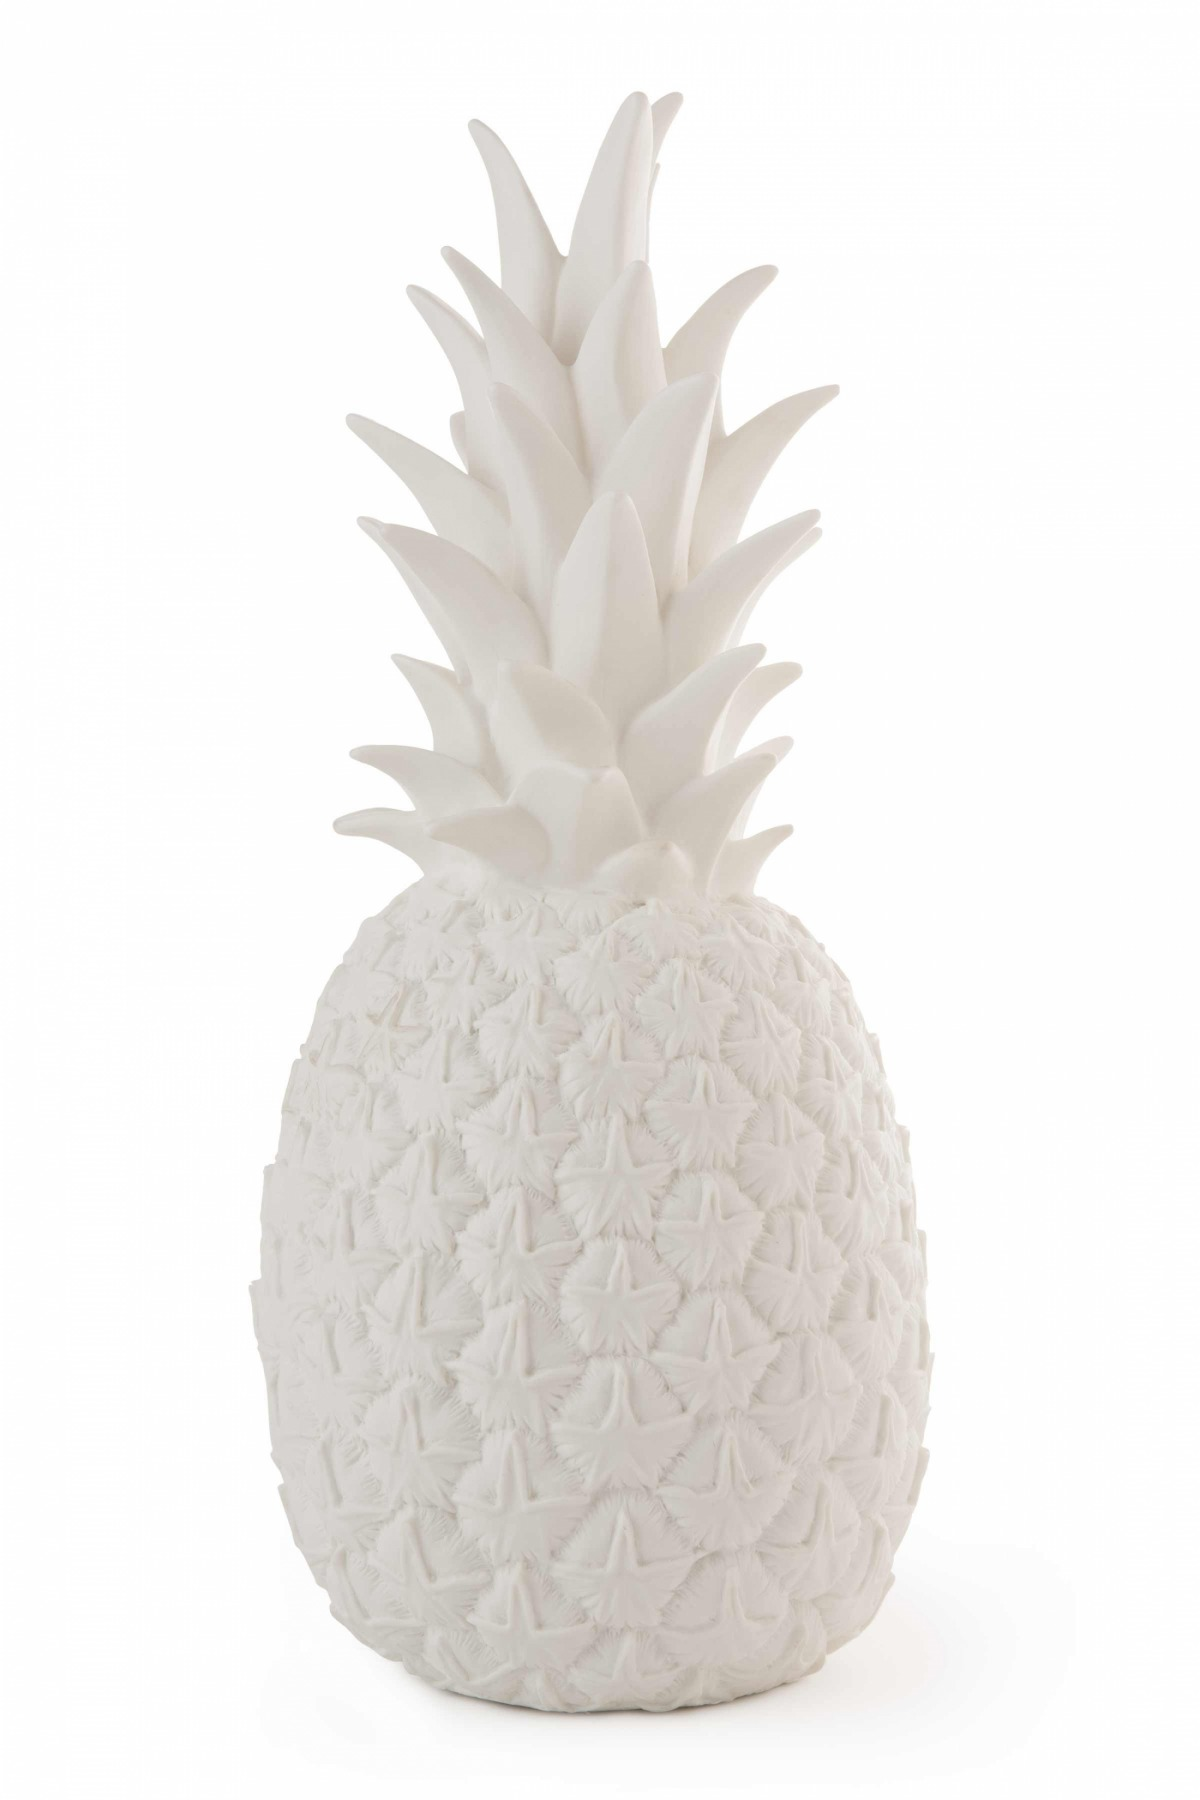 ANANAS LIGHT PINA COLADA WHITE - USB- von Goodnight Light - 1